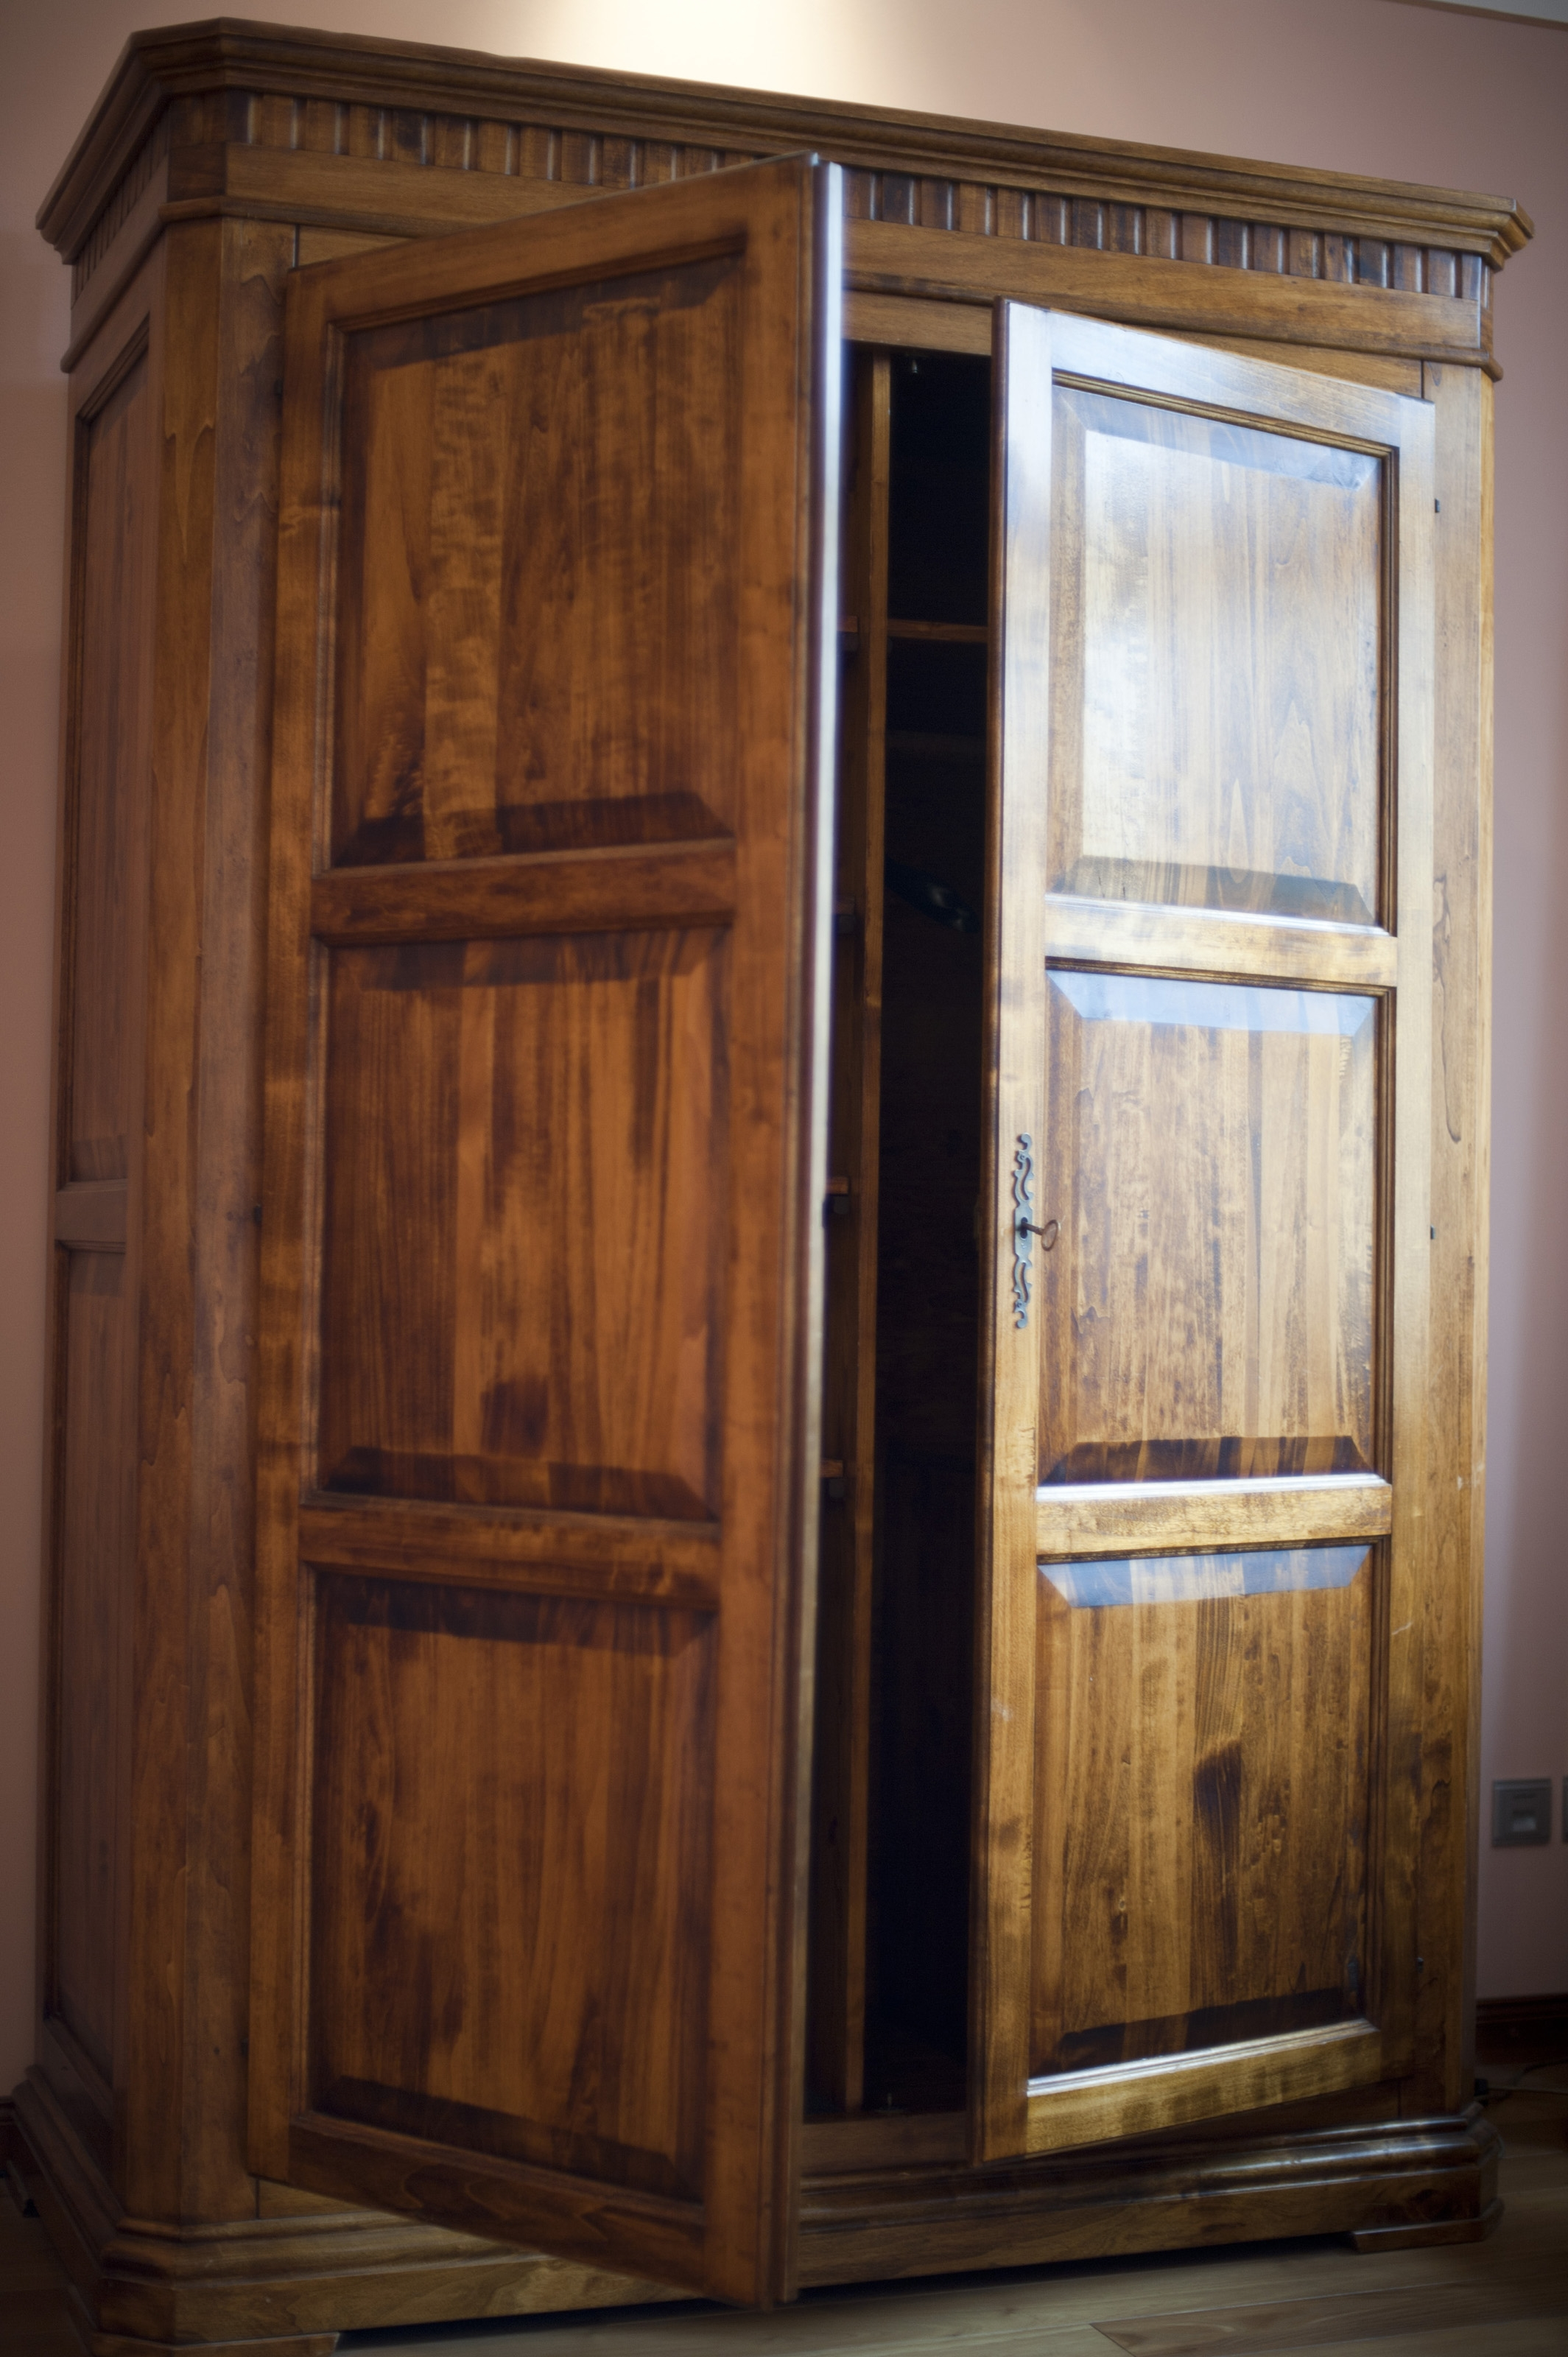 Free Stock Photo 8912 Rustic Wooden Wardrobe Or Armoire Within Large Wooden Wardrobes (Image 14 of 25)